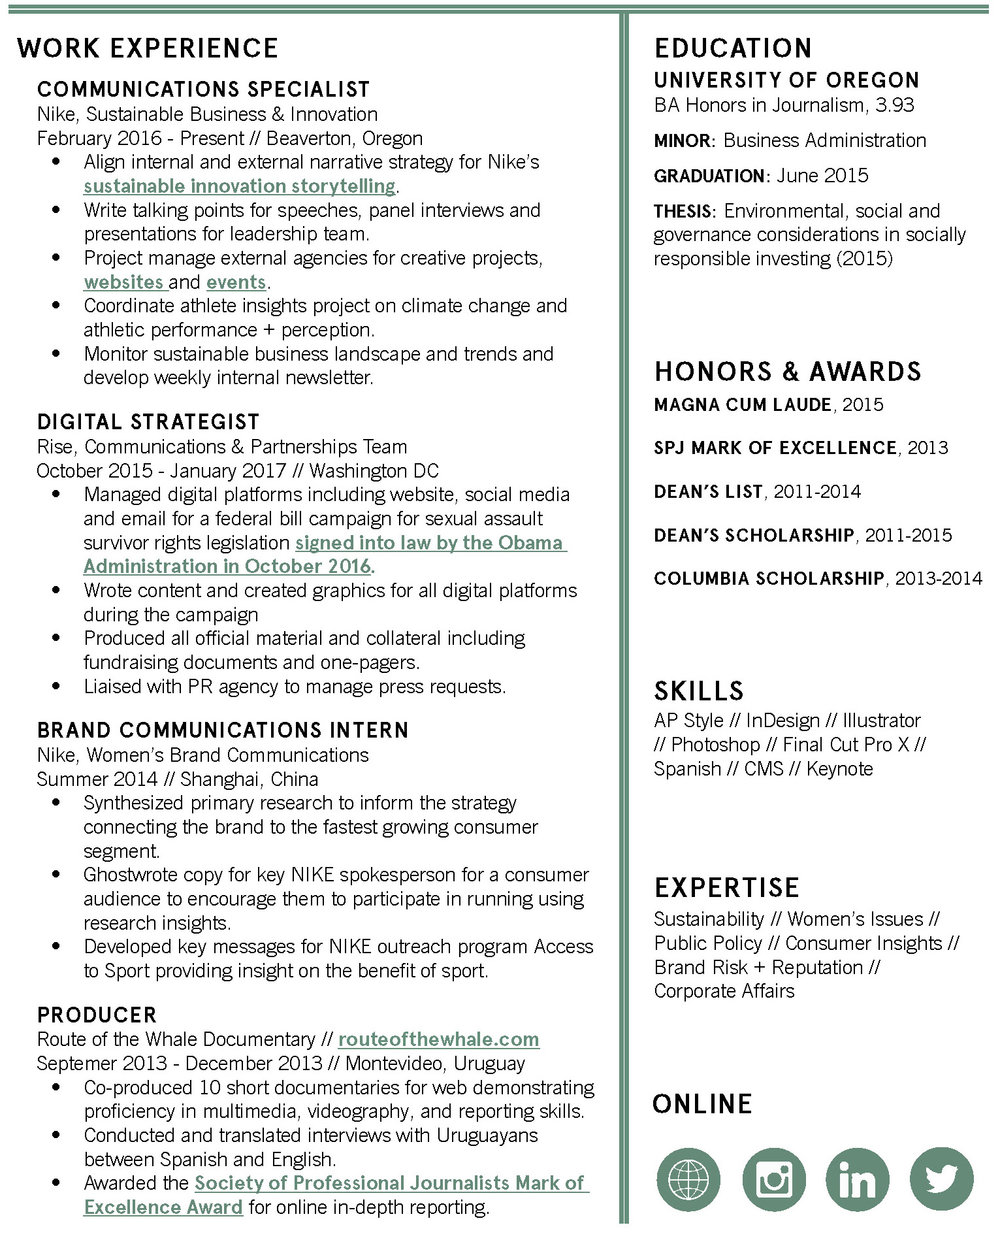 meredith st clair resume croppedjpg. Resume Example. Resume CV Cover Letter